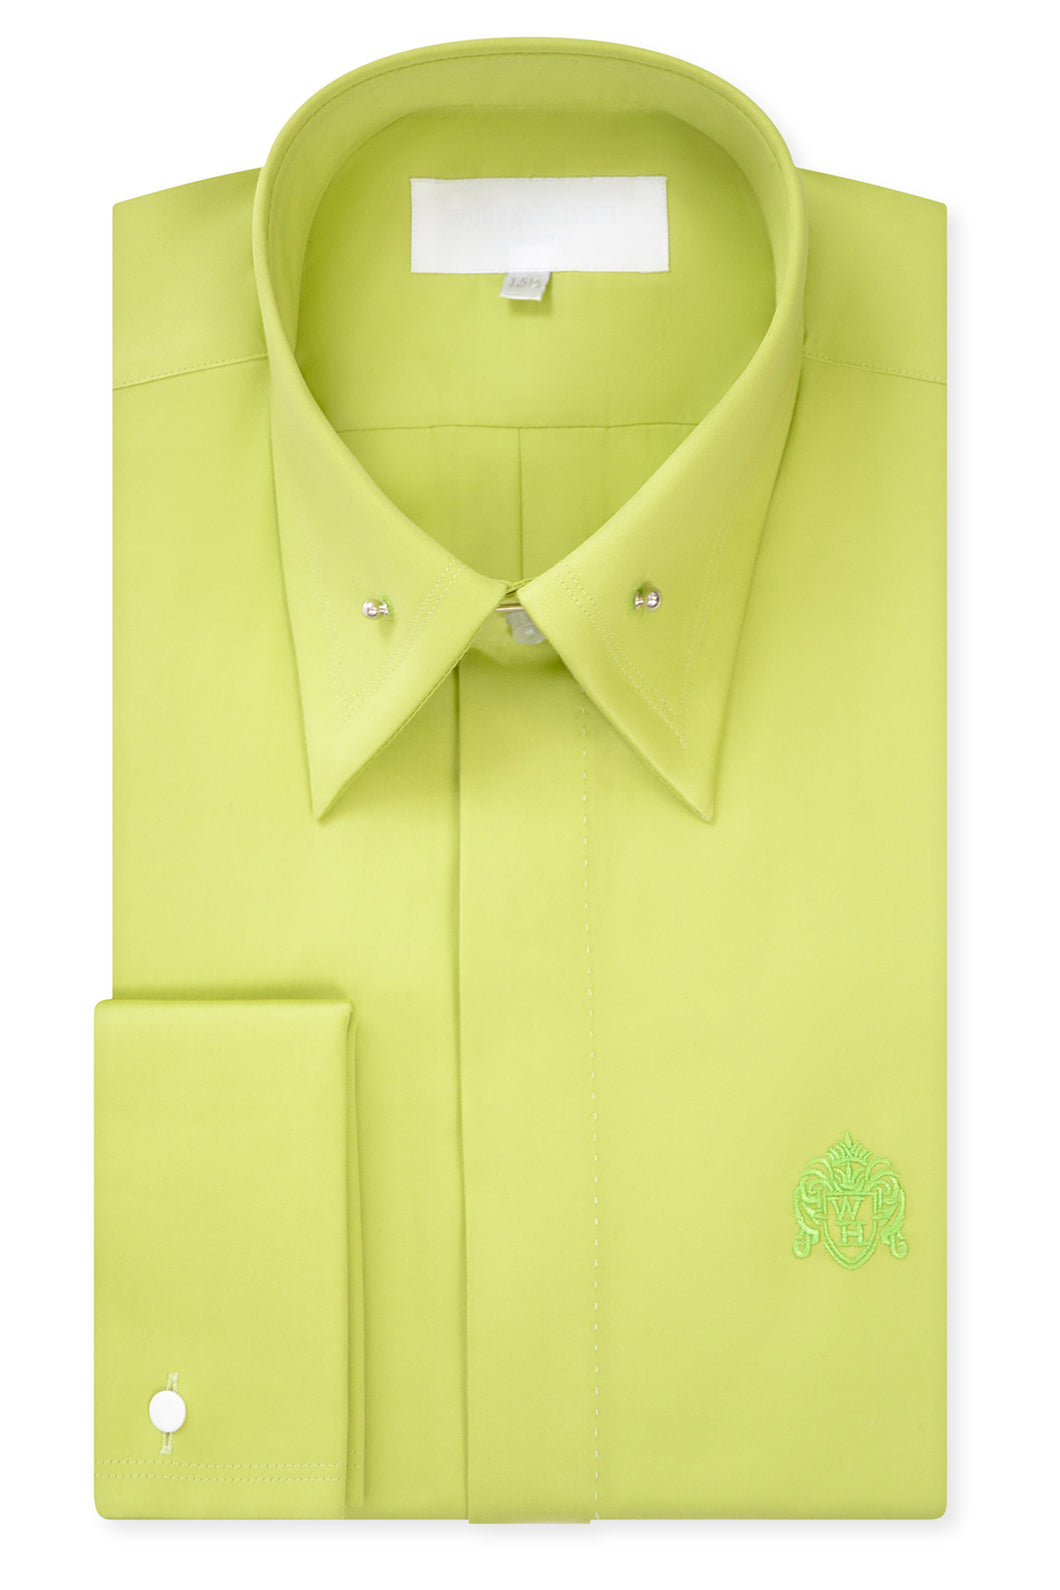 Lime Green Exaggerated Point Pin Collar Shirt with Matching Tie